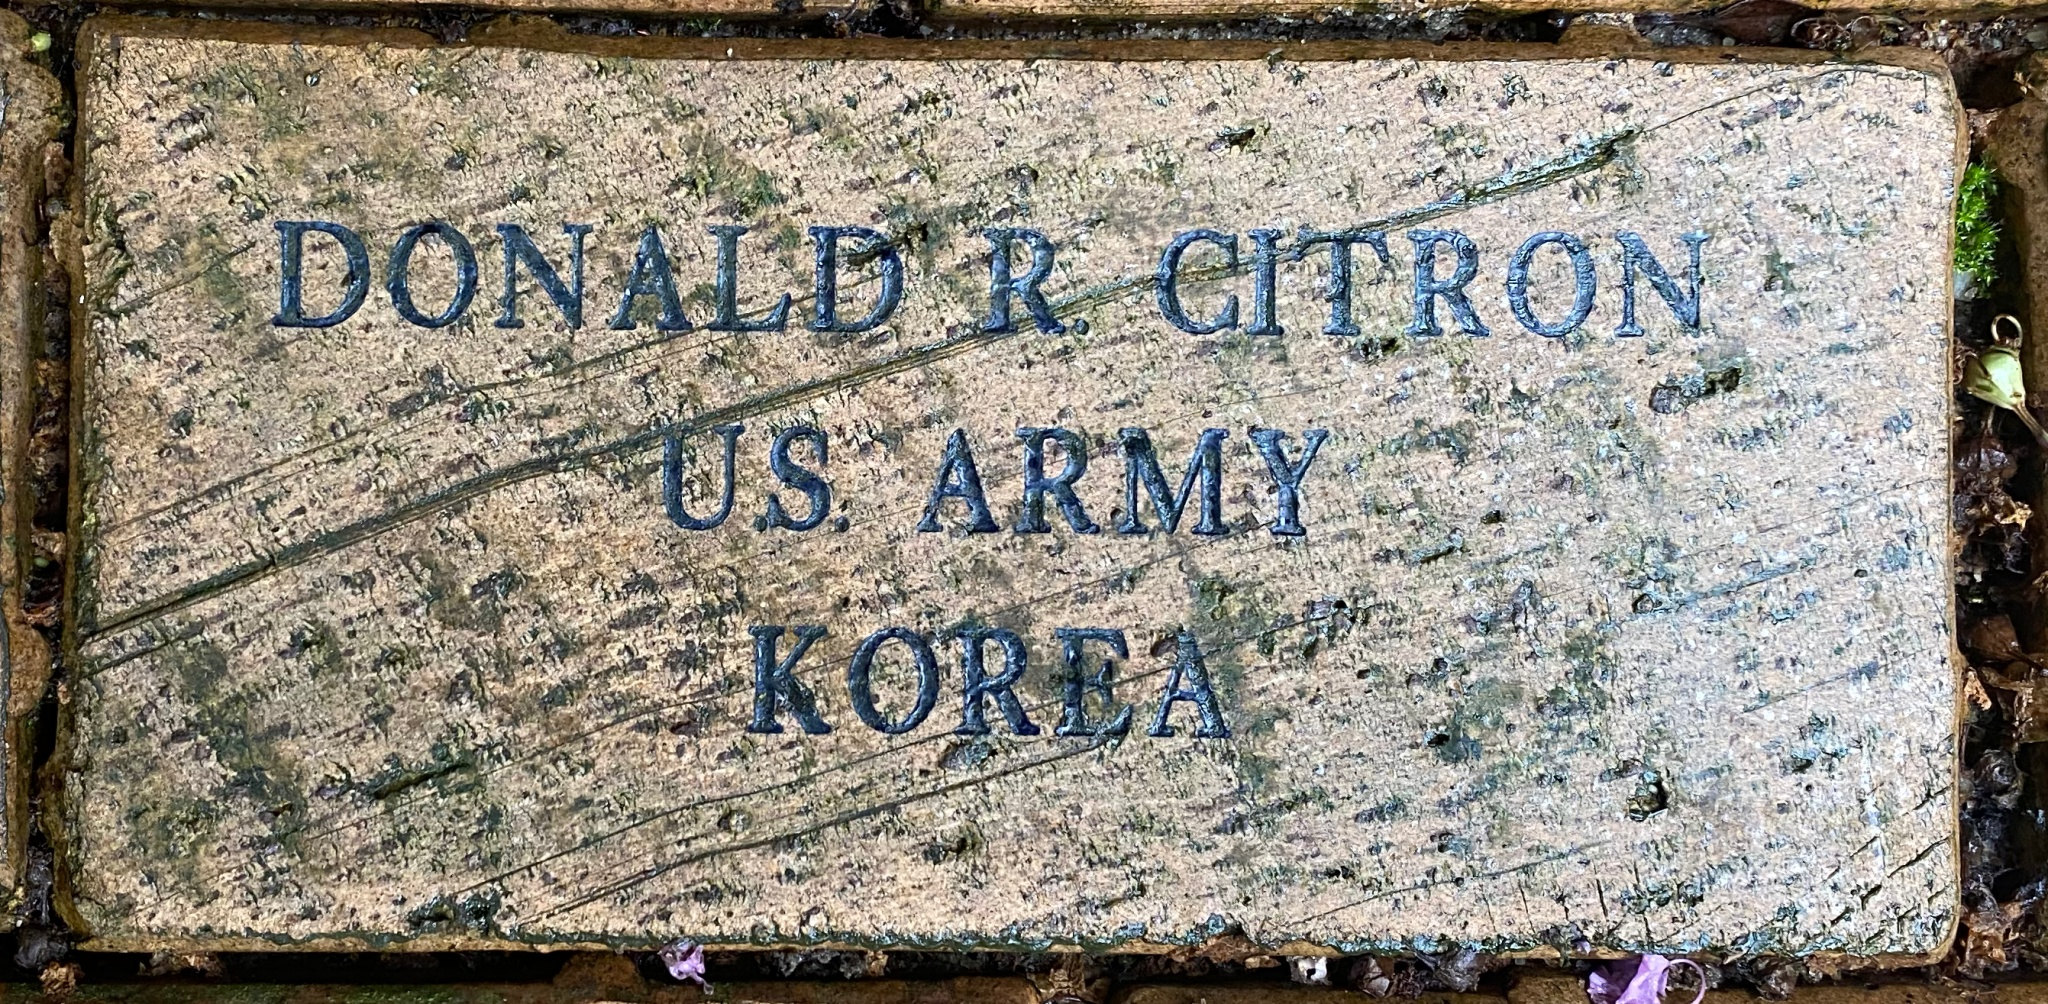 DONALD R. CITRON U.S. ARMY KOREA